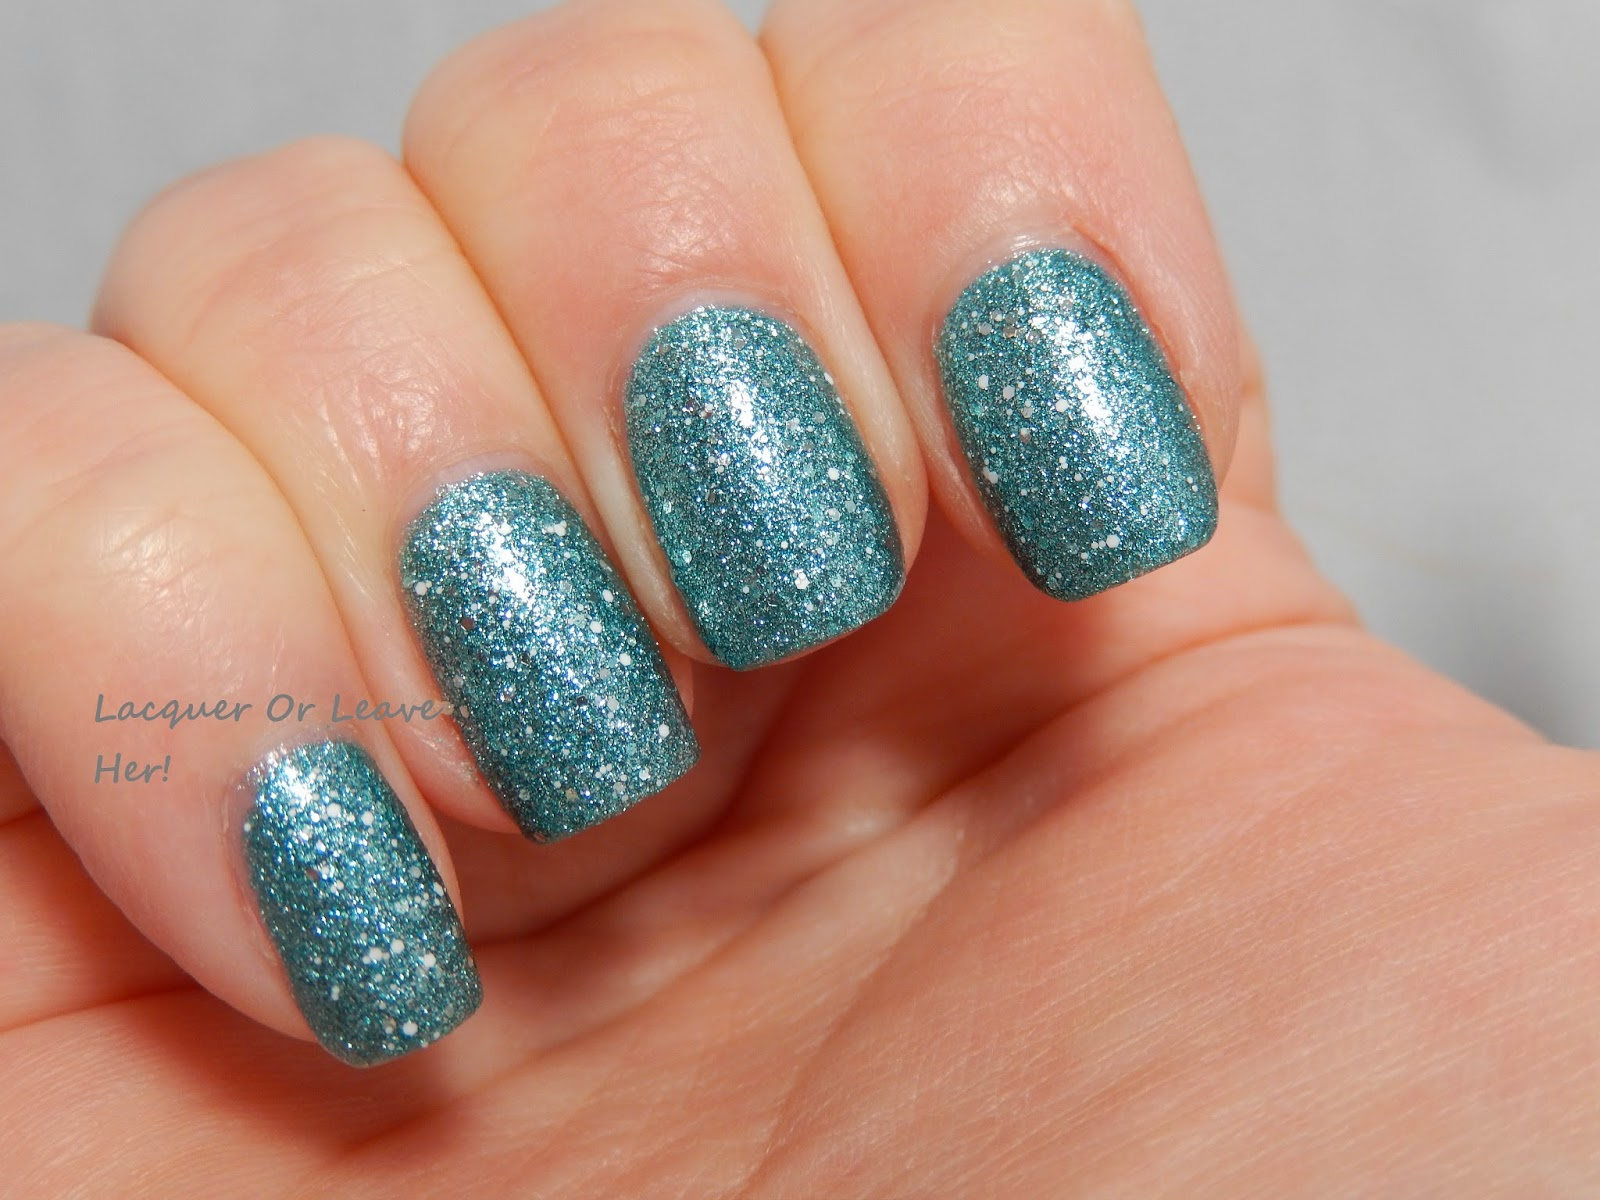 InDecisive Nail Lacquer White Speckled over Orly Aqua Pixel